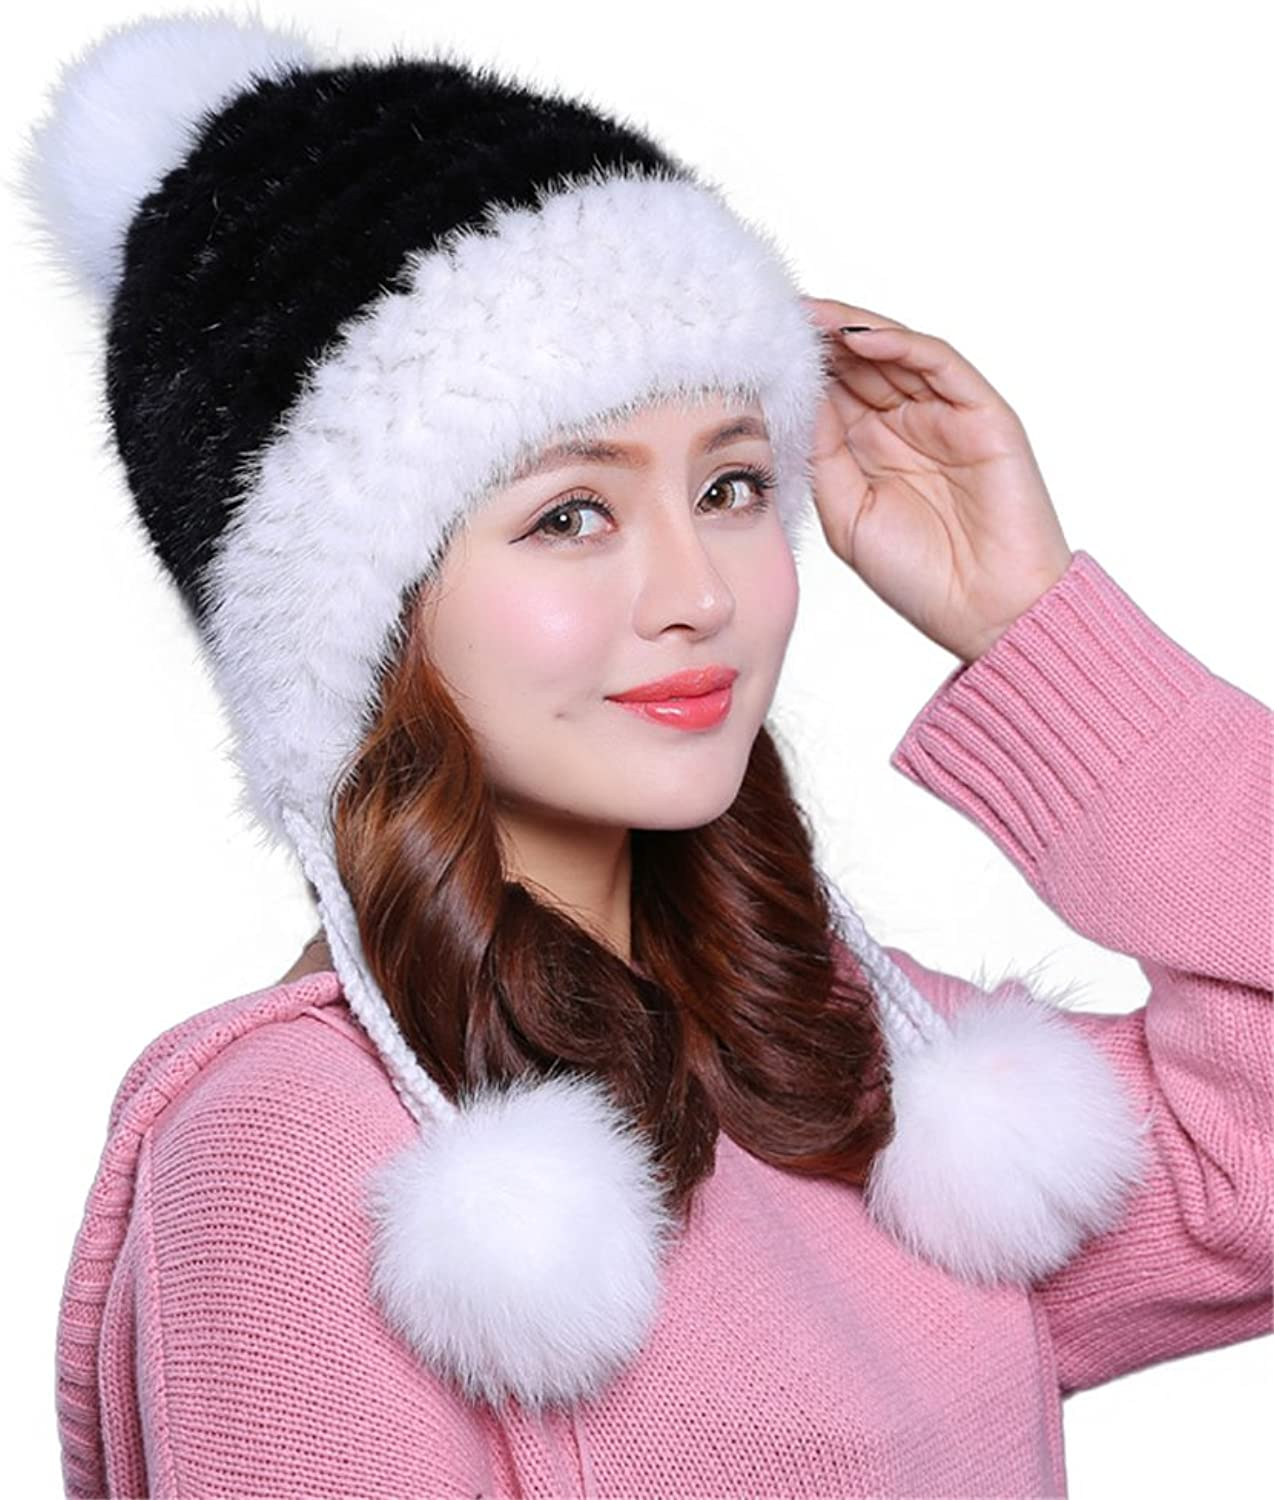 ETHEL ANDERSON Womens Winter Beanie Knitted Mink Real Fur Hats With Fox Fur Earflaps Pom Pom Cap